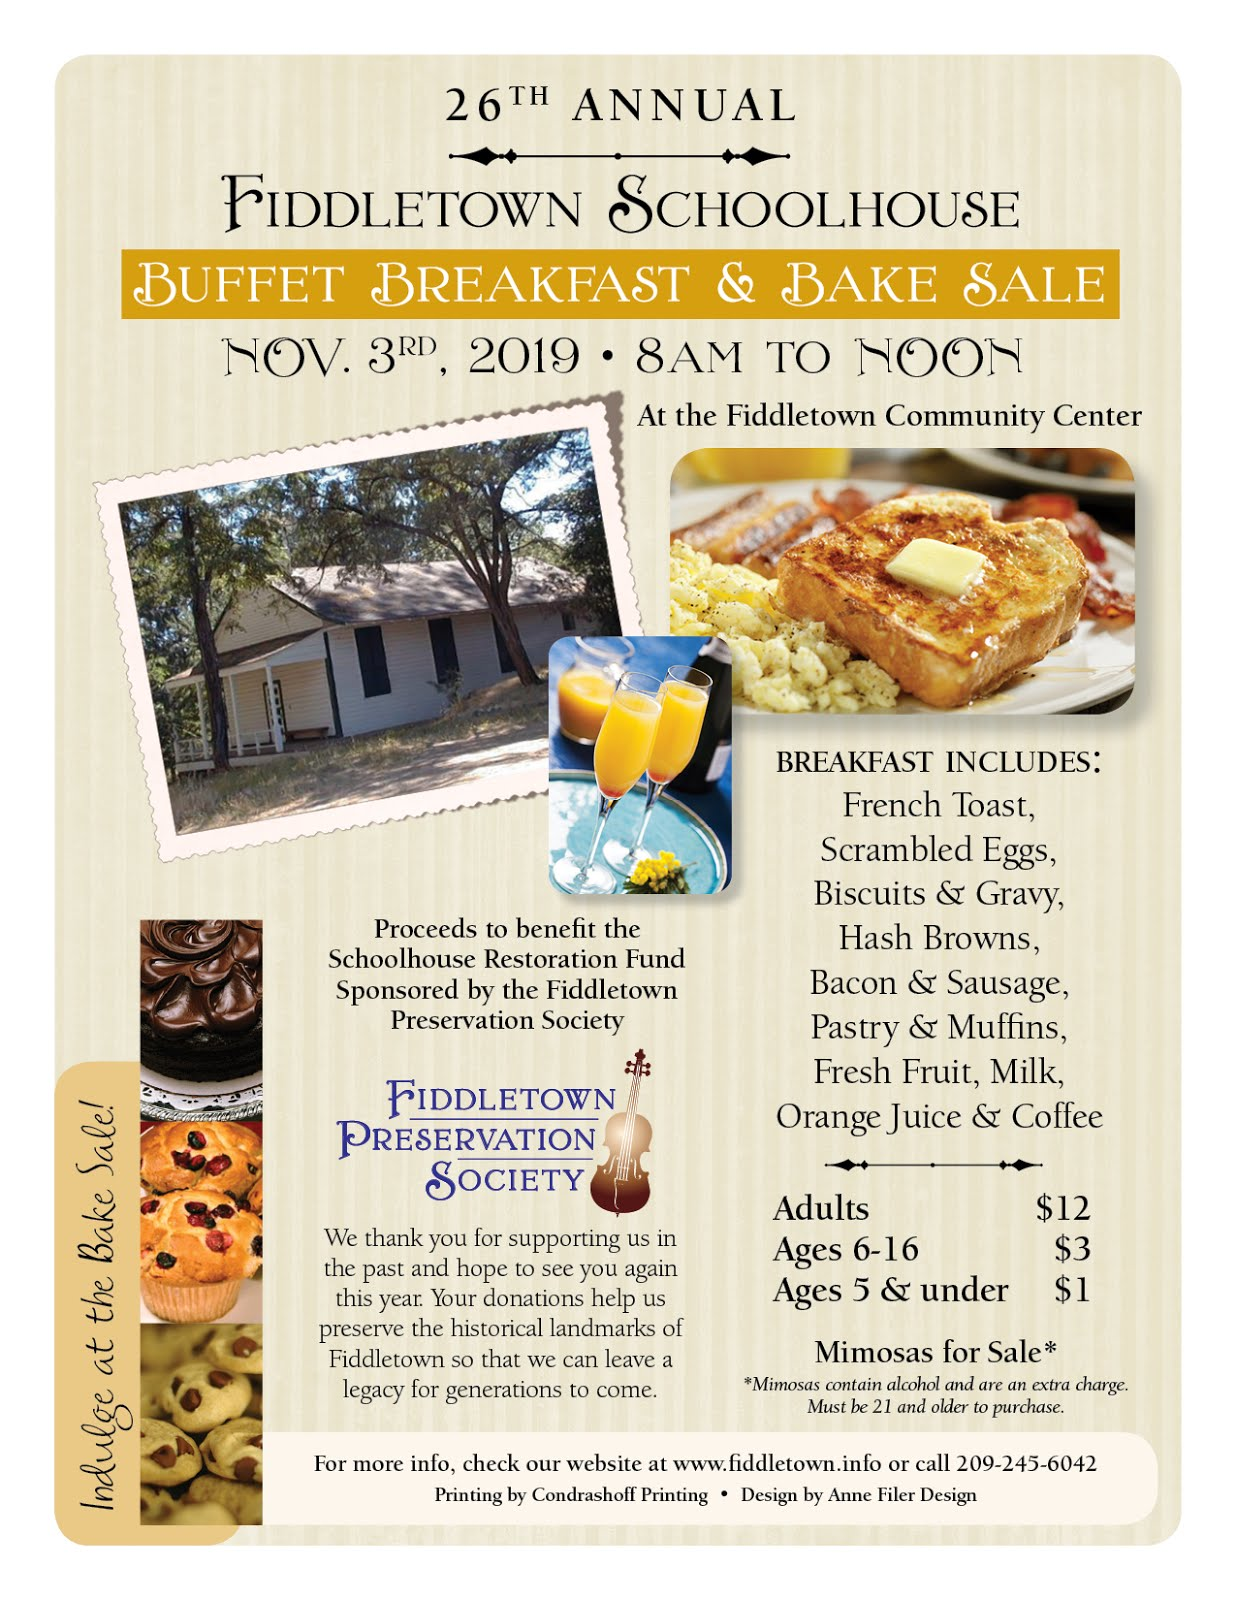 Fiddletown Schoolhouse Buffet Breakfast & Bake Sale - Sun Nov 3